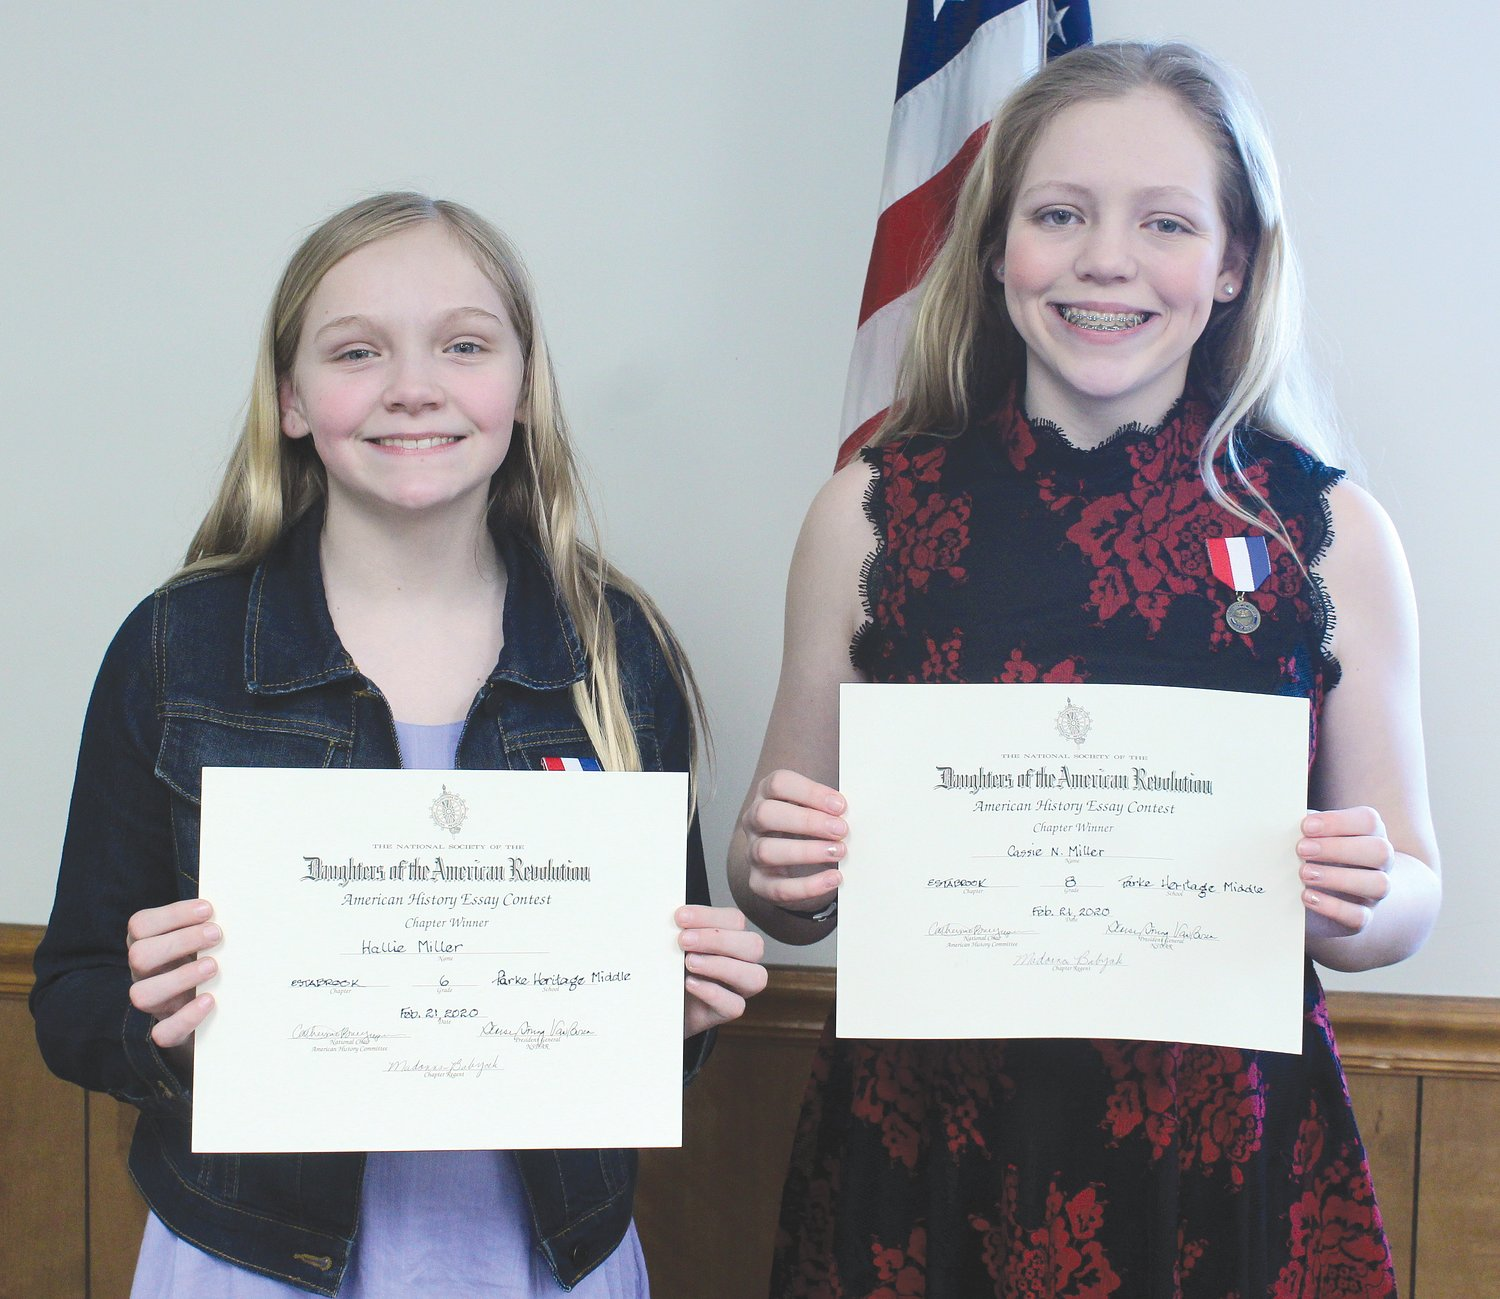 "The members of the Daughters of the American Revolution organization recognized the winners of their essay contest in a special ceremony Feb. 21 at the Parke County fairgrounds meeting room. Grade winners were sixth grade, Hallie Miller, and eighth grade, Cassie Miller, both of Parke Heritage Middle School. The essay topic was ""The Voyage of the Mayflower."" The essays advanced to the state level. Both Hallie and Cassie placed second in the state and will be honored at a banquet May 17 in Indianapolis. Pictured are Hallie, left, and Cassie are the daughters of Matt and Melanie Miller of Tangier."